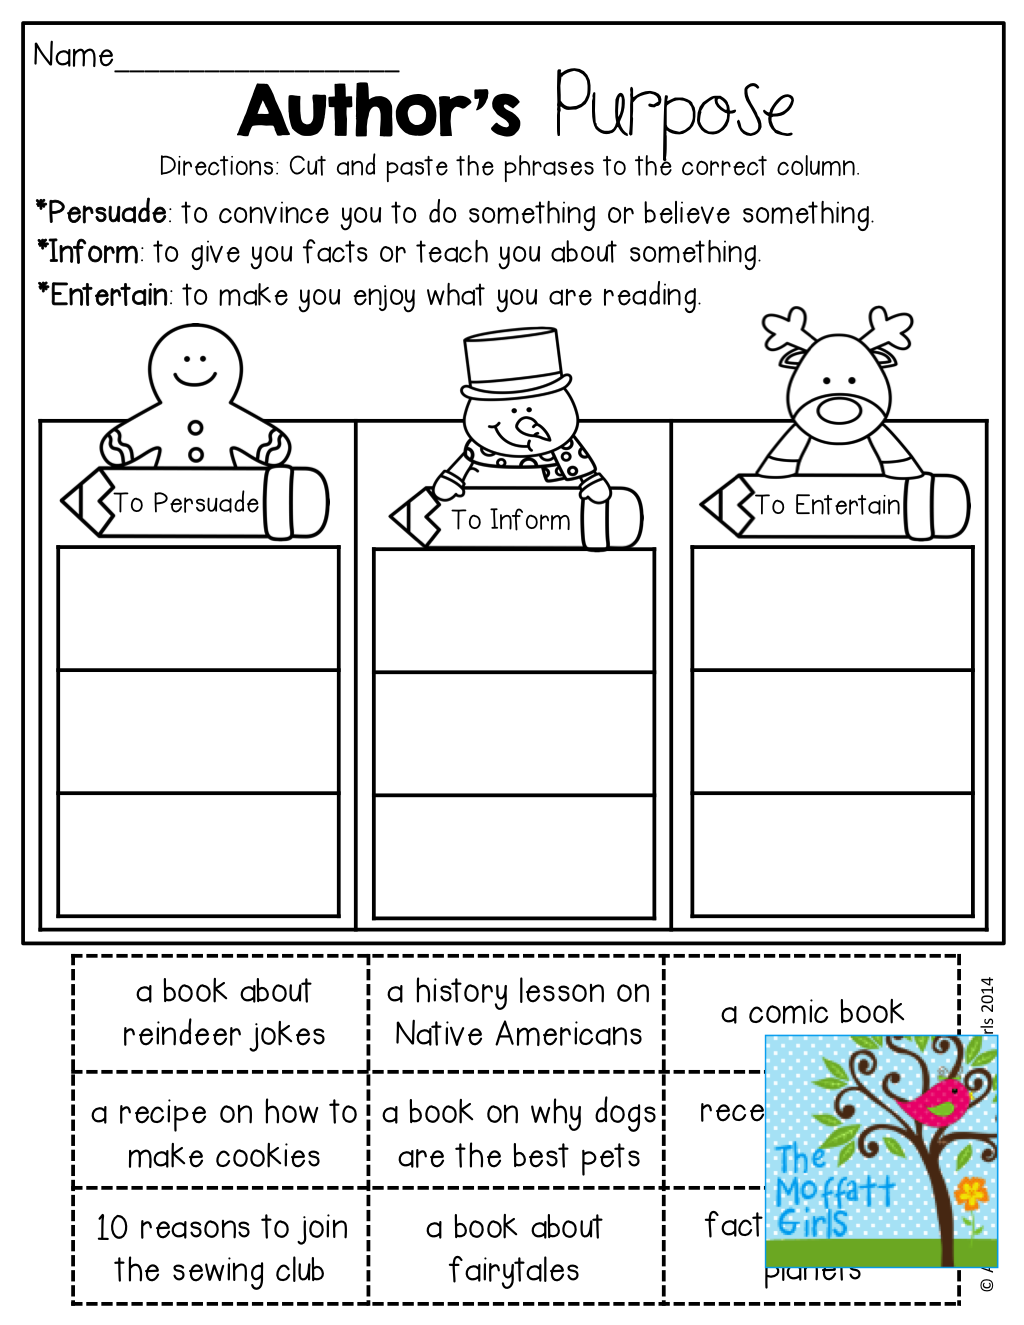 Author's Purpose Worksheets 7th Grade